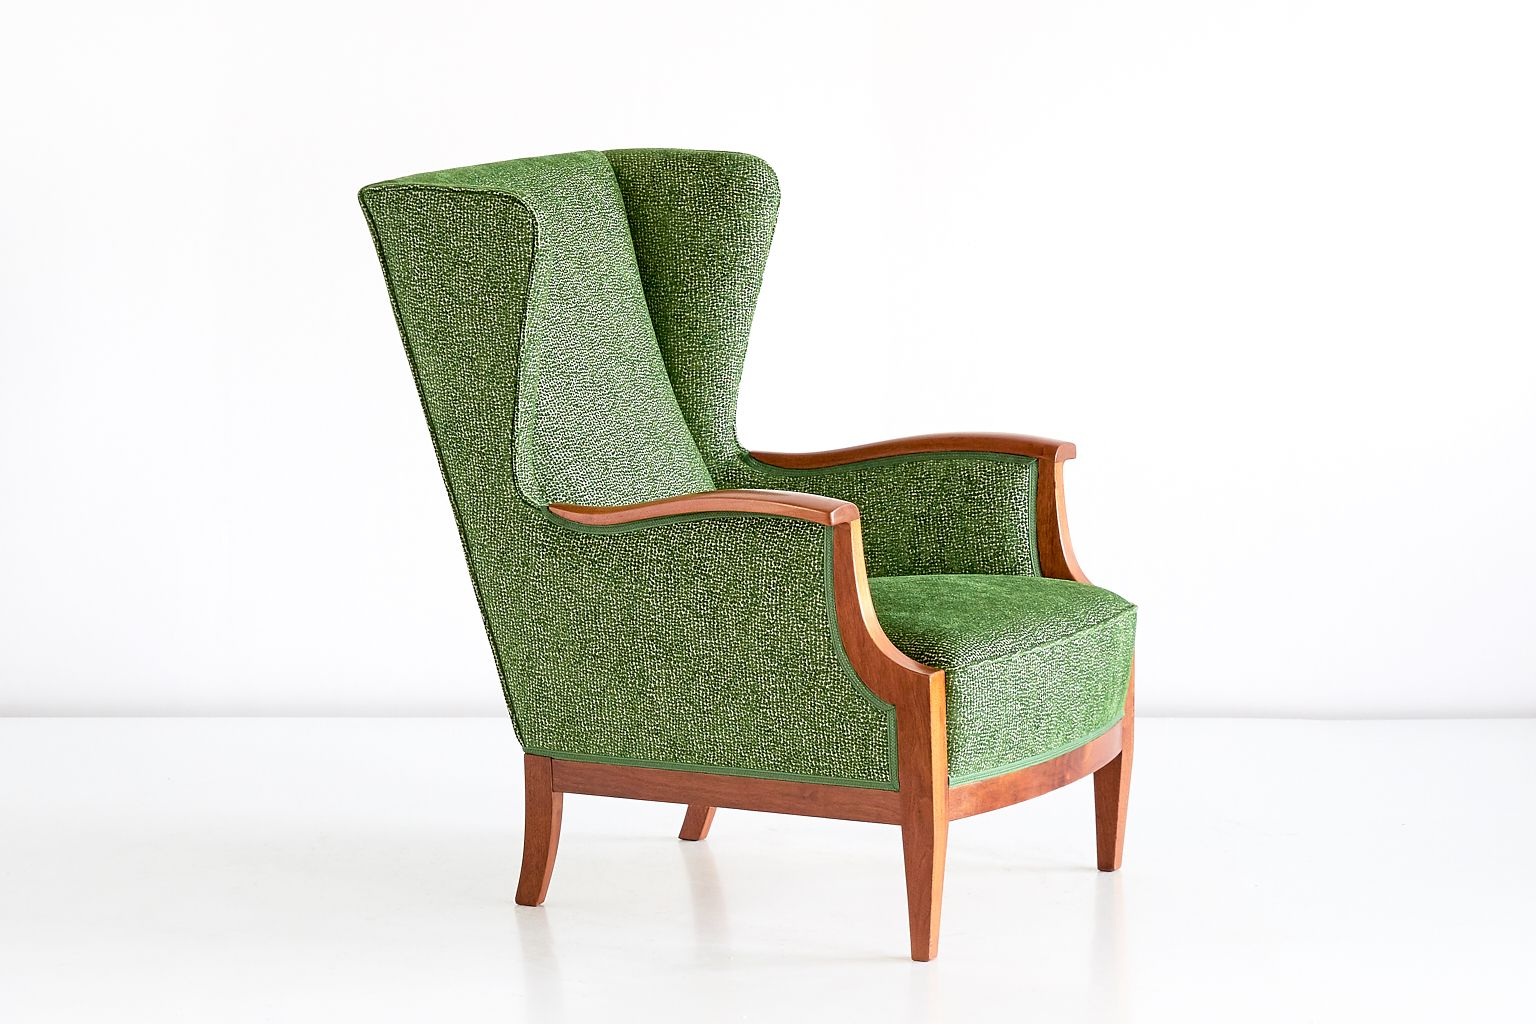 Wingback chair by frits henningsen 1930s for sale at pamono for Ohrensessel oliver